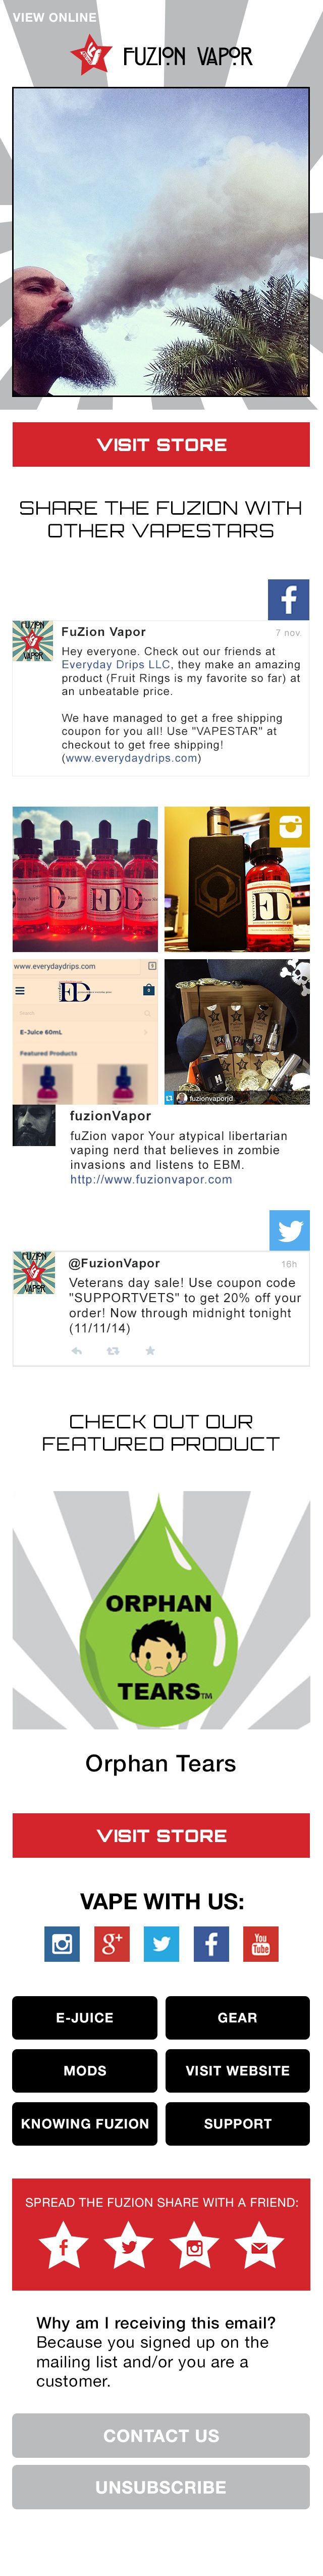 FuZion Vapor looks GREAT on mobile